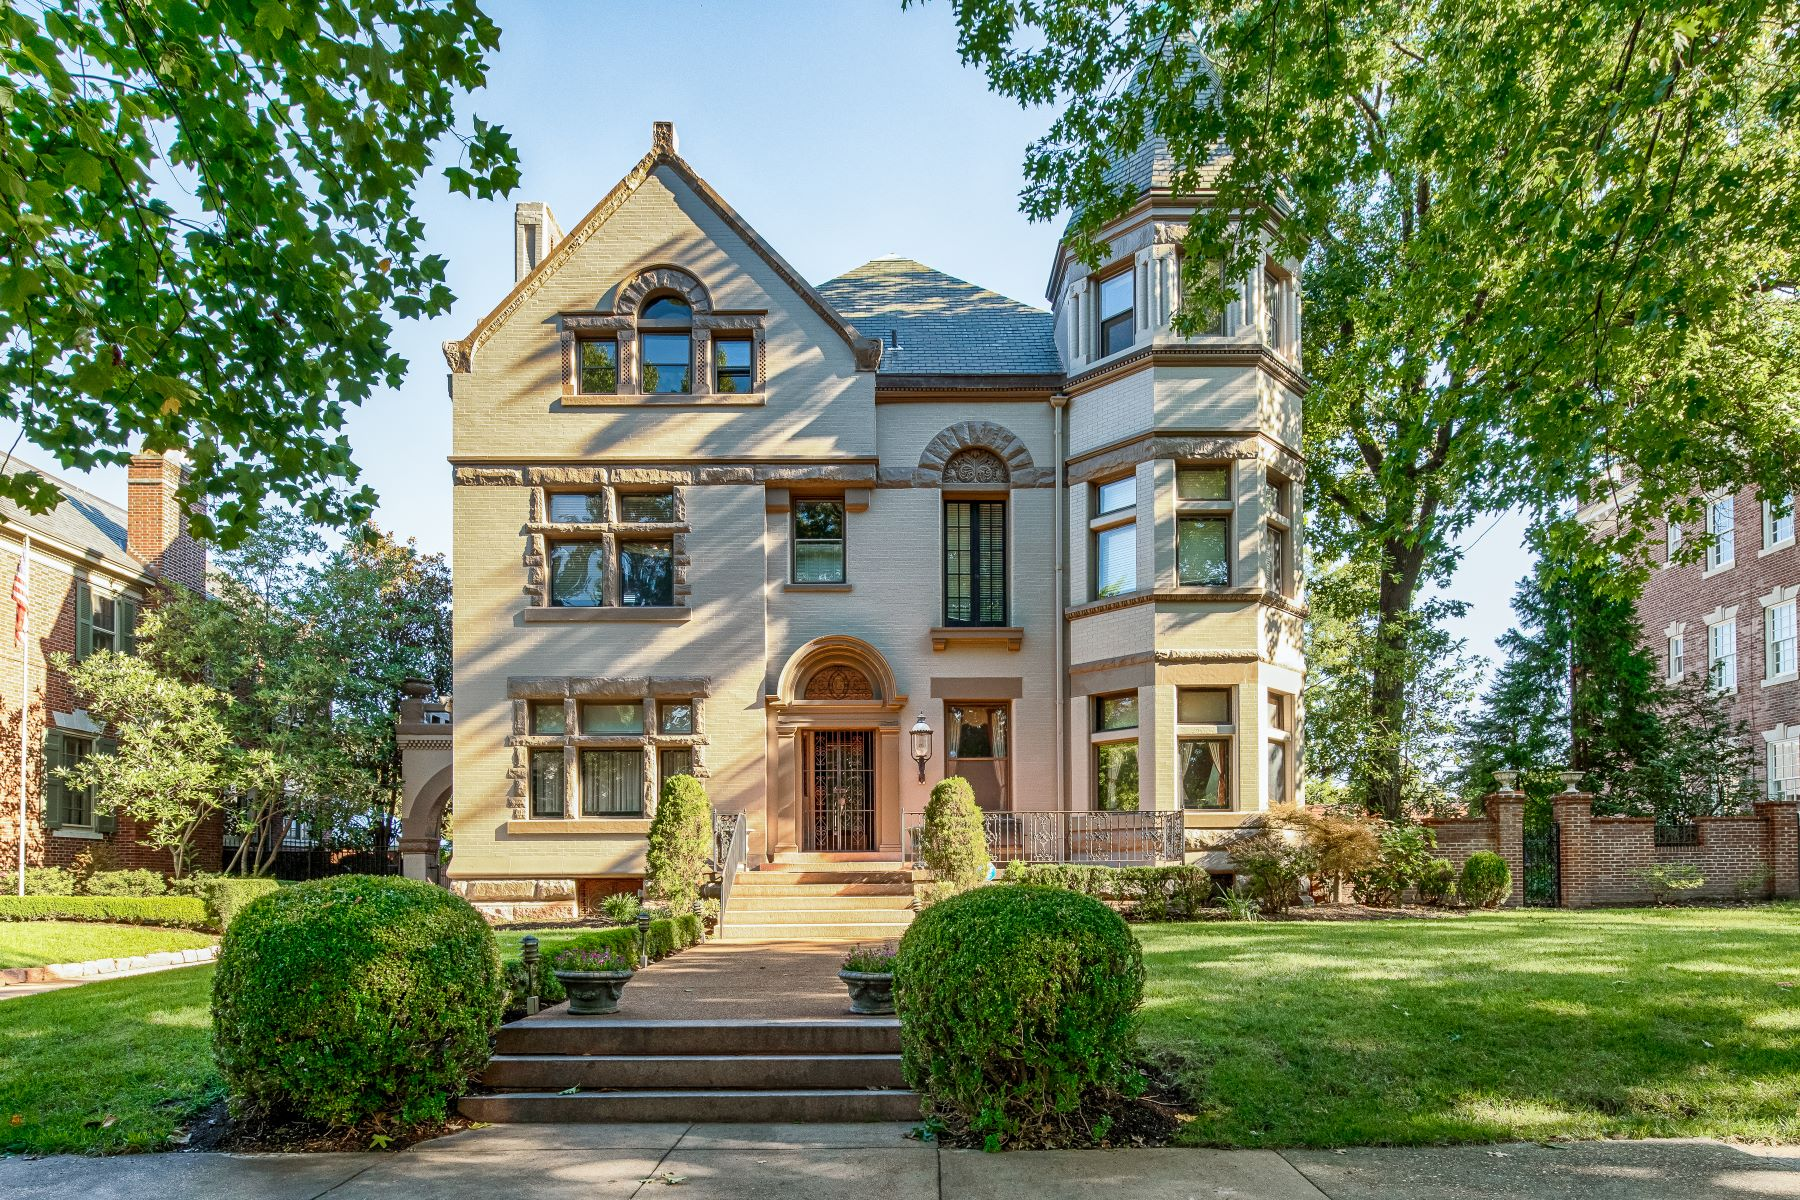 Property for Sale at Regal Queen Anne Style Mansion 39 Portland Place St. Louis, Missouri 63108 United States